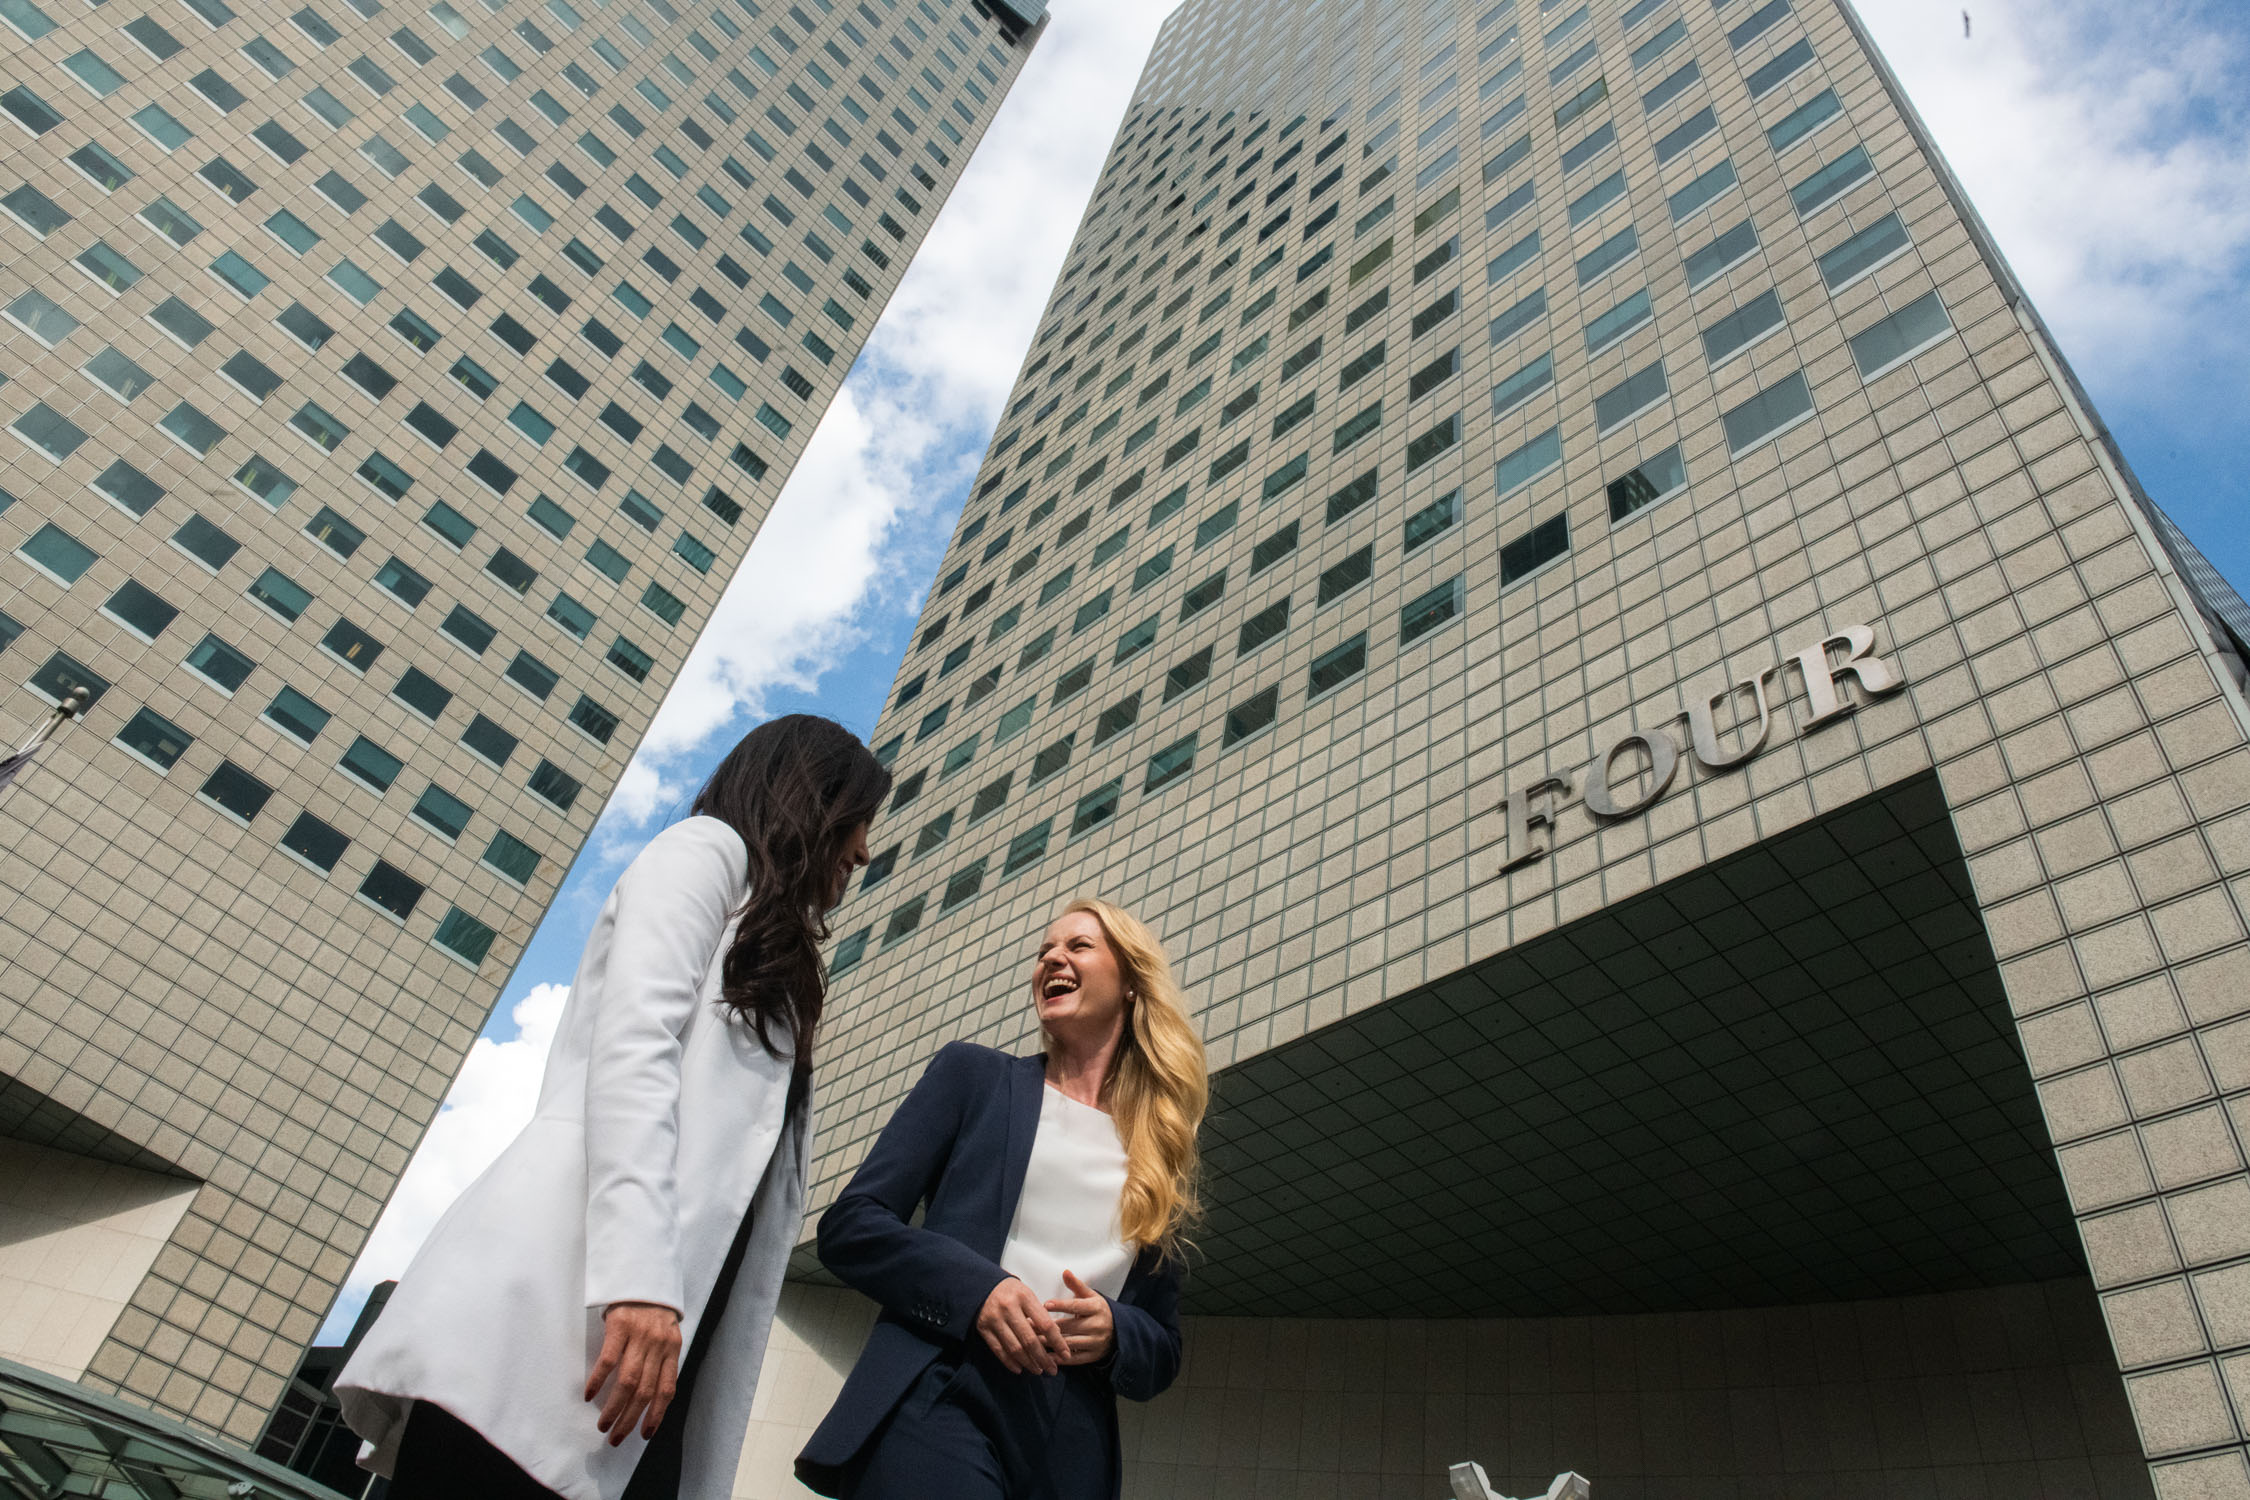 Two women in formal corporate attire walking and talking together outside an office building